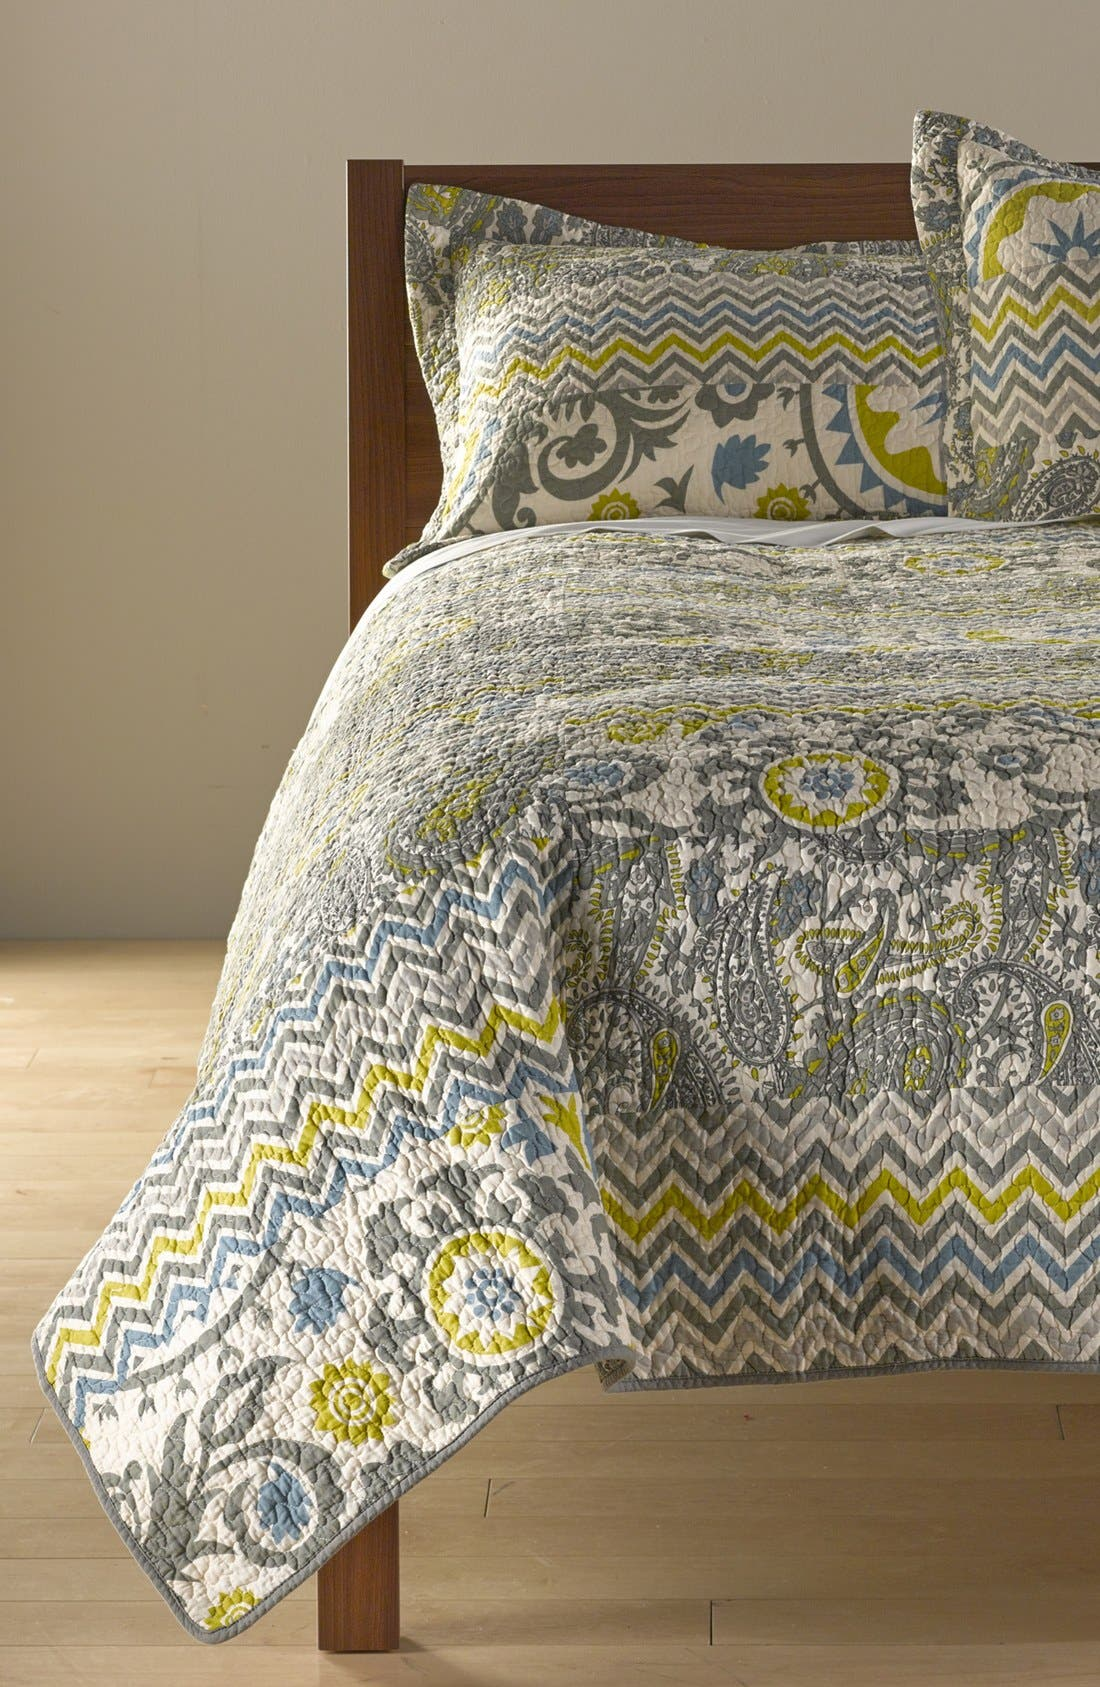 Alternate Image 1 Selected - Hedaya Home Fashions 'Verano' Quilt